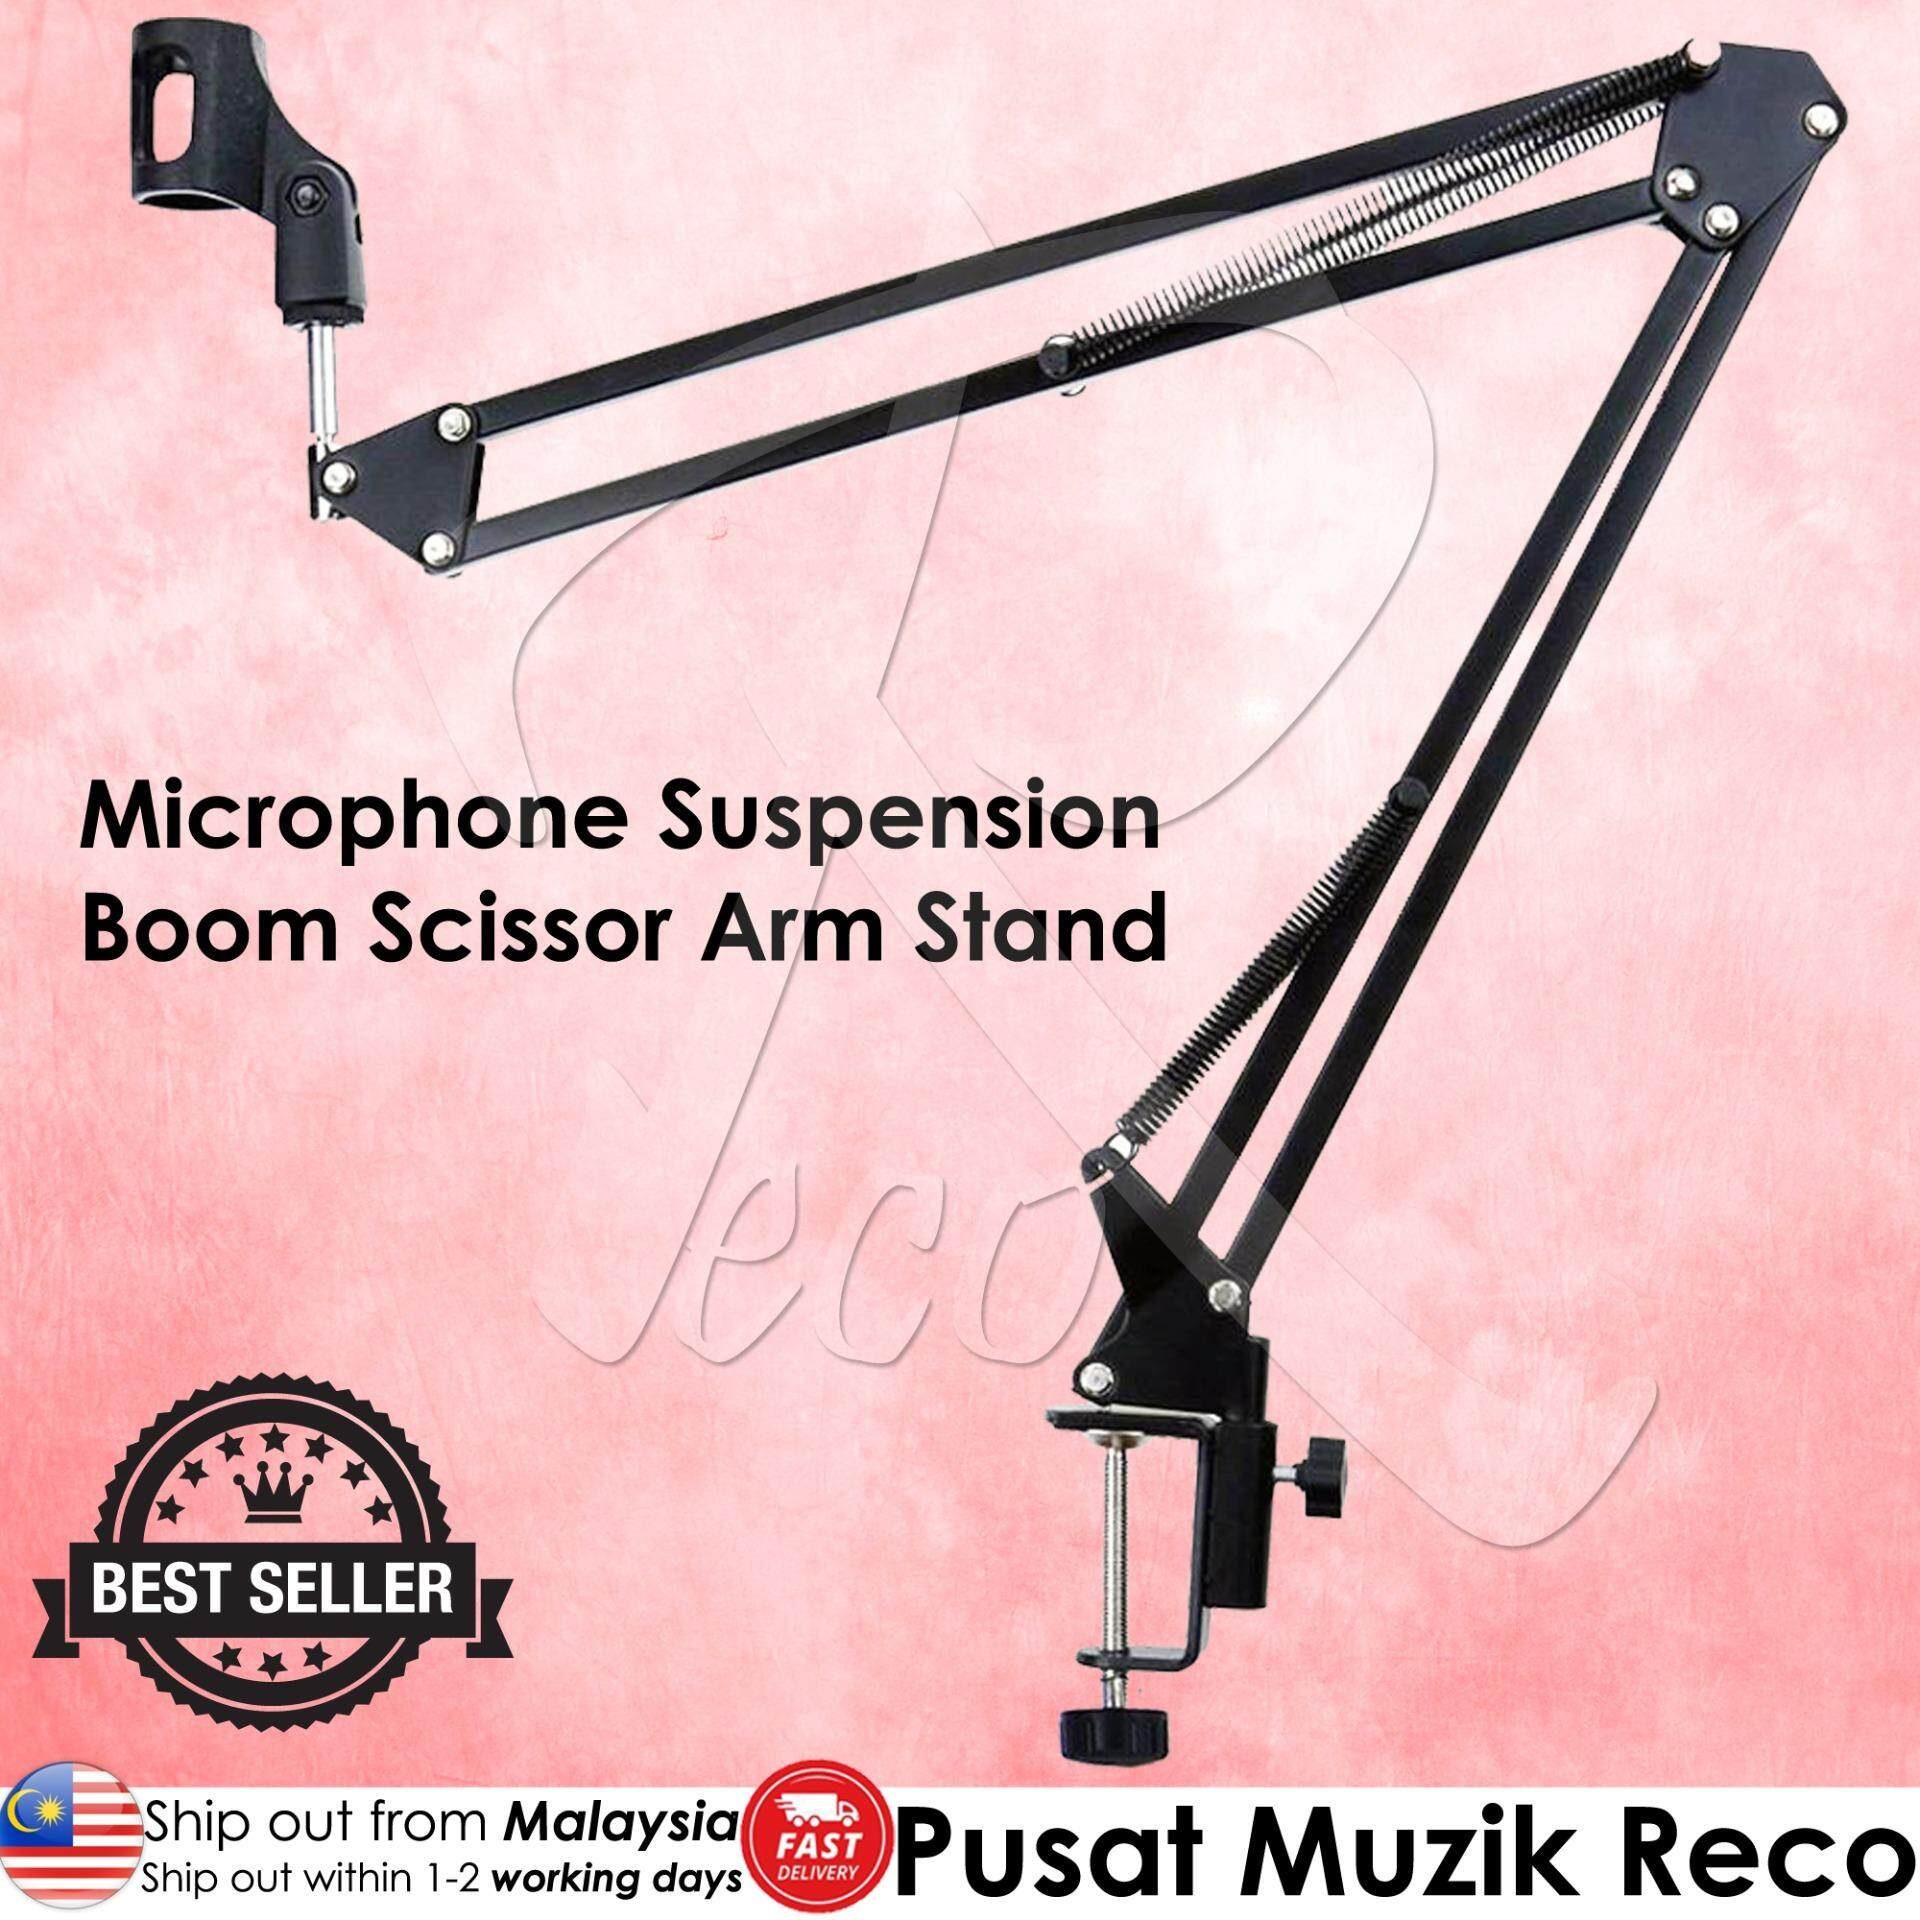 RM NB35 NB-35 Microphone Suspension Boom Scissor Arm Desktop Stand with Mic Clip Holder